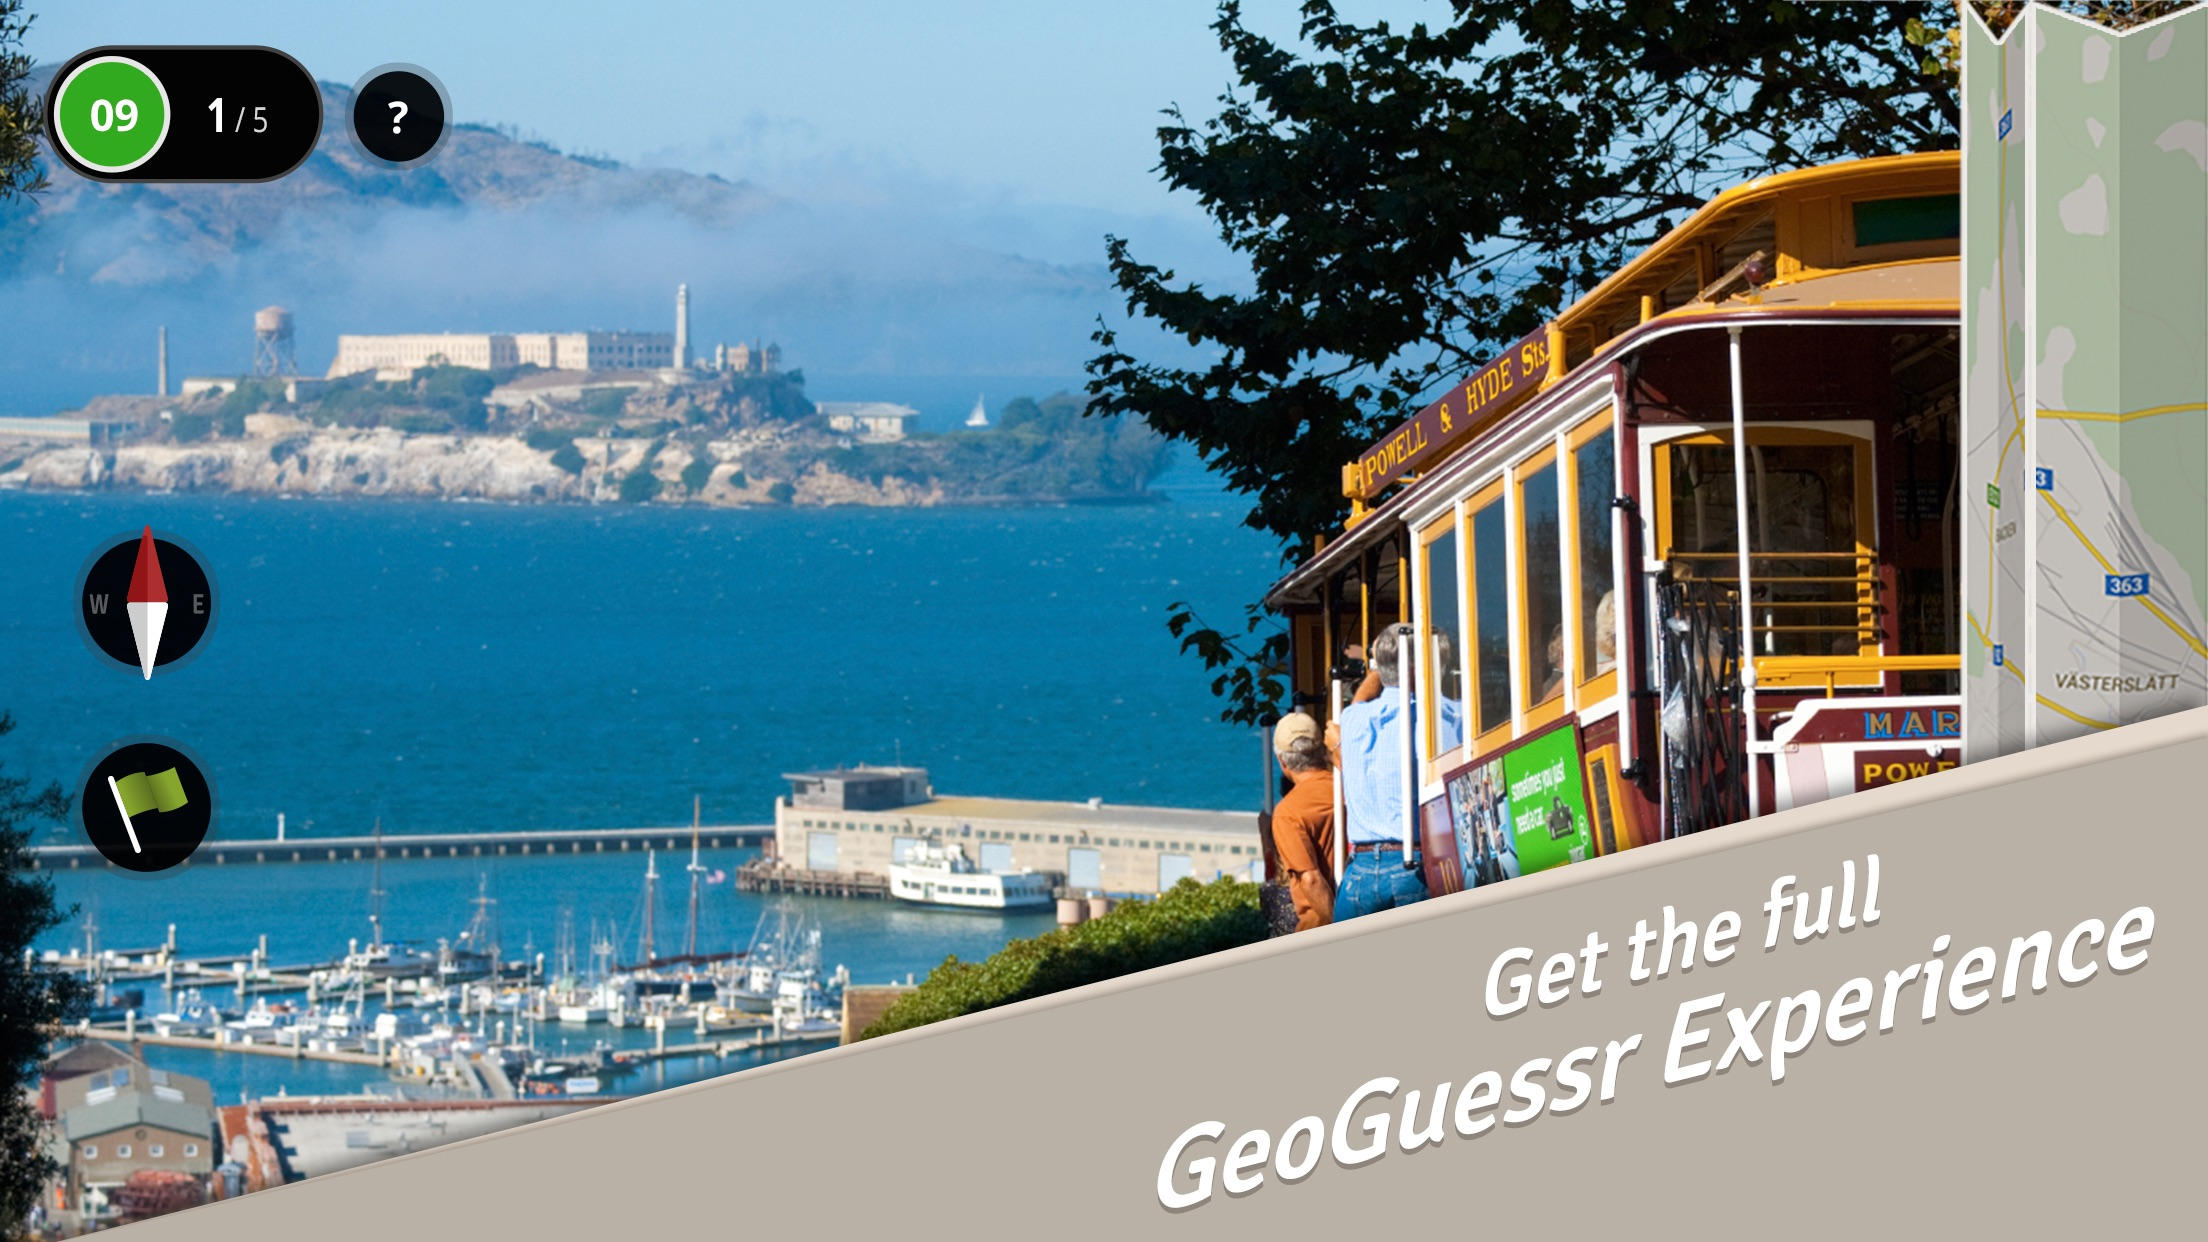 GeoGuessr - Let's explore the world! Screenshot